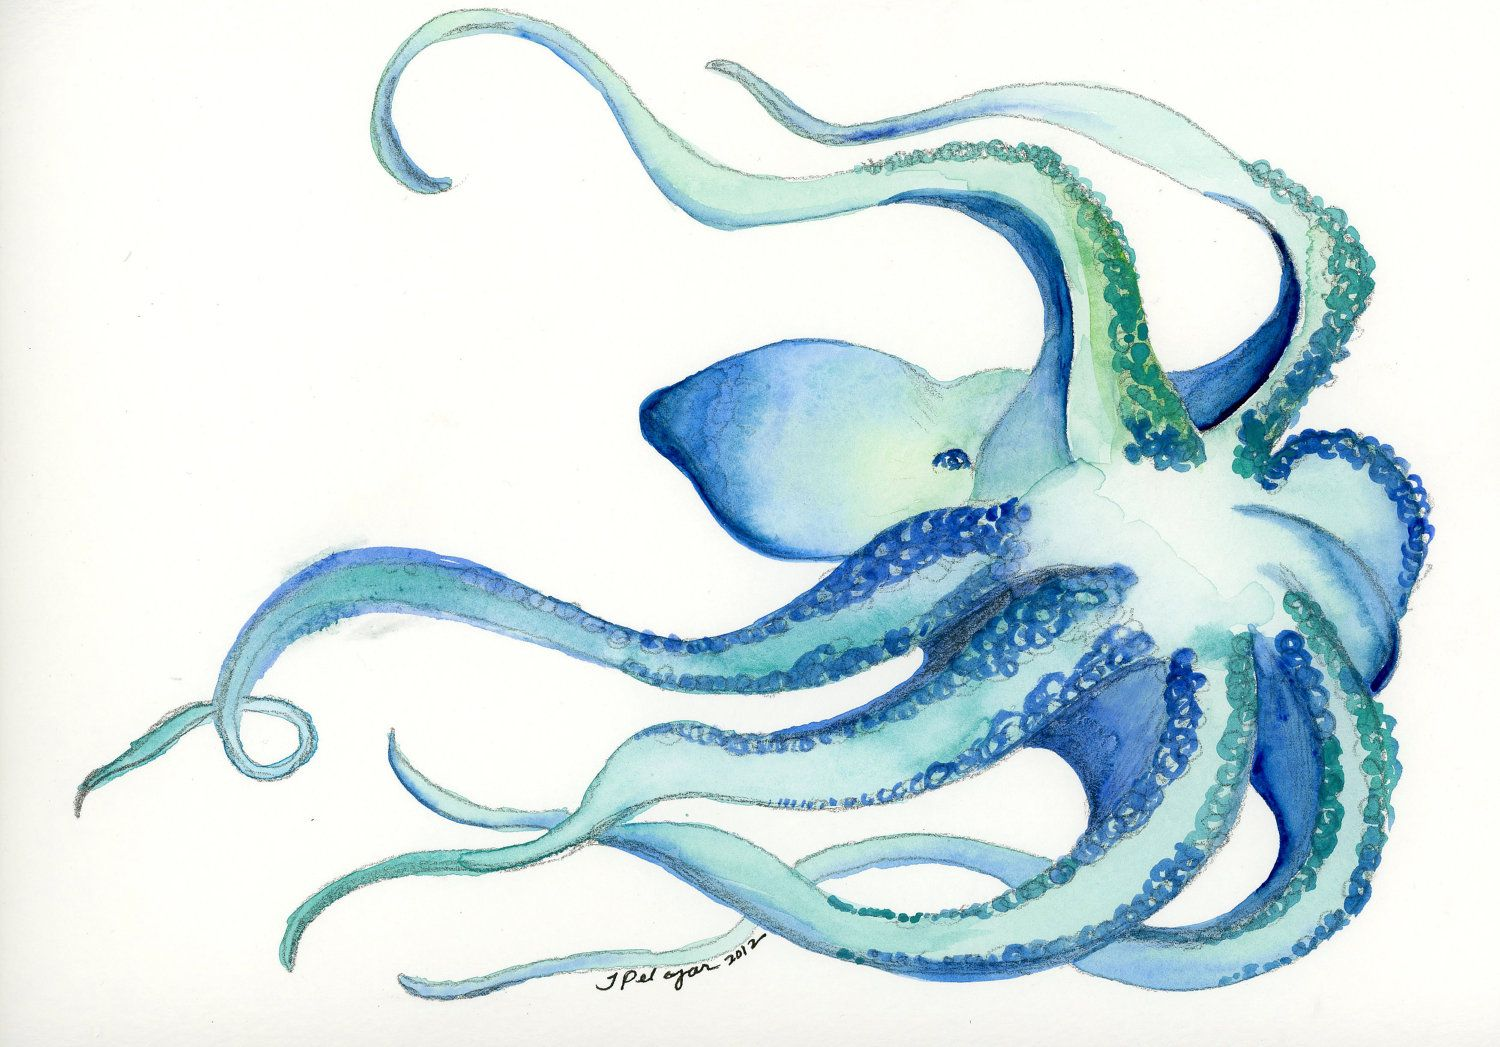 Cool Octopus Art Cool Octopus Print Watercolor Illustration By Tiffany Pelczar